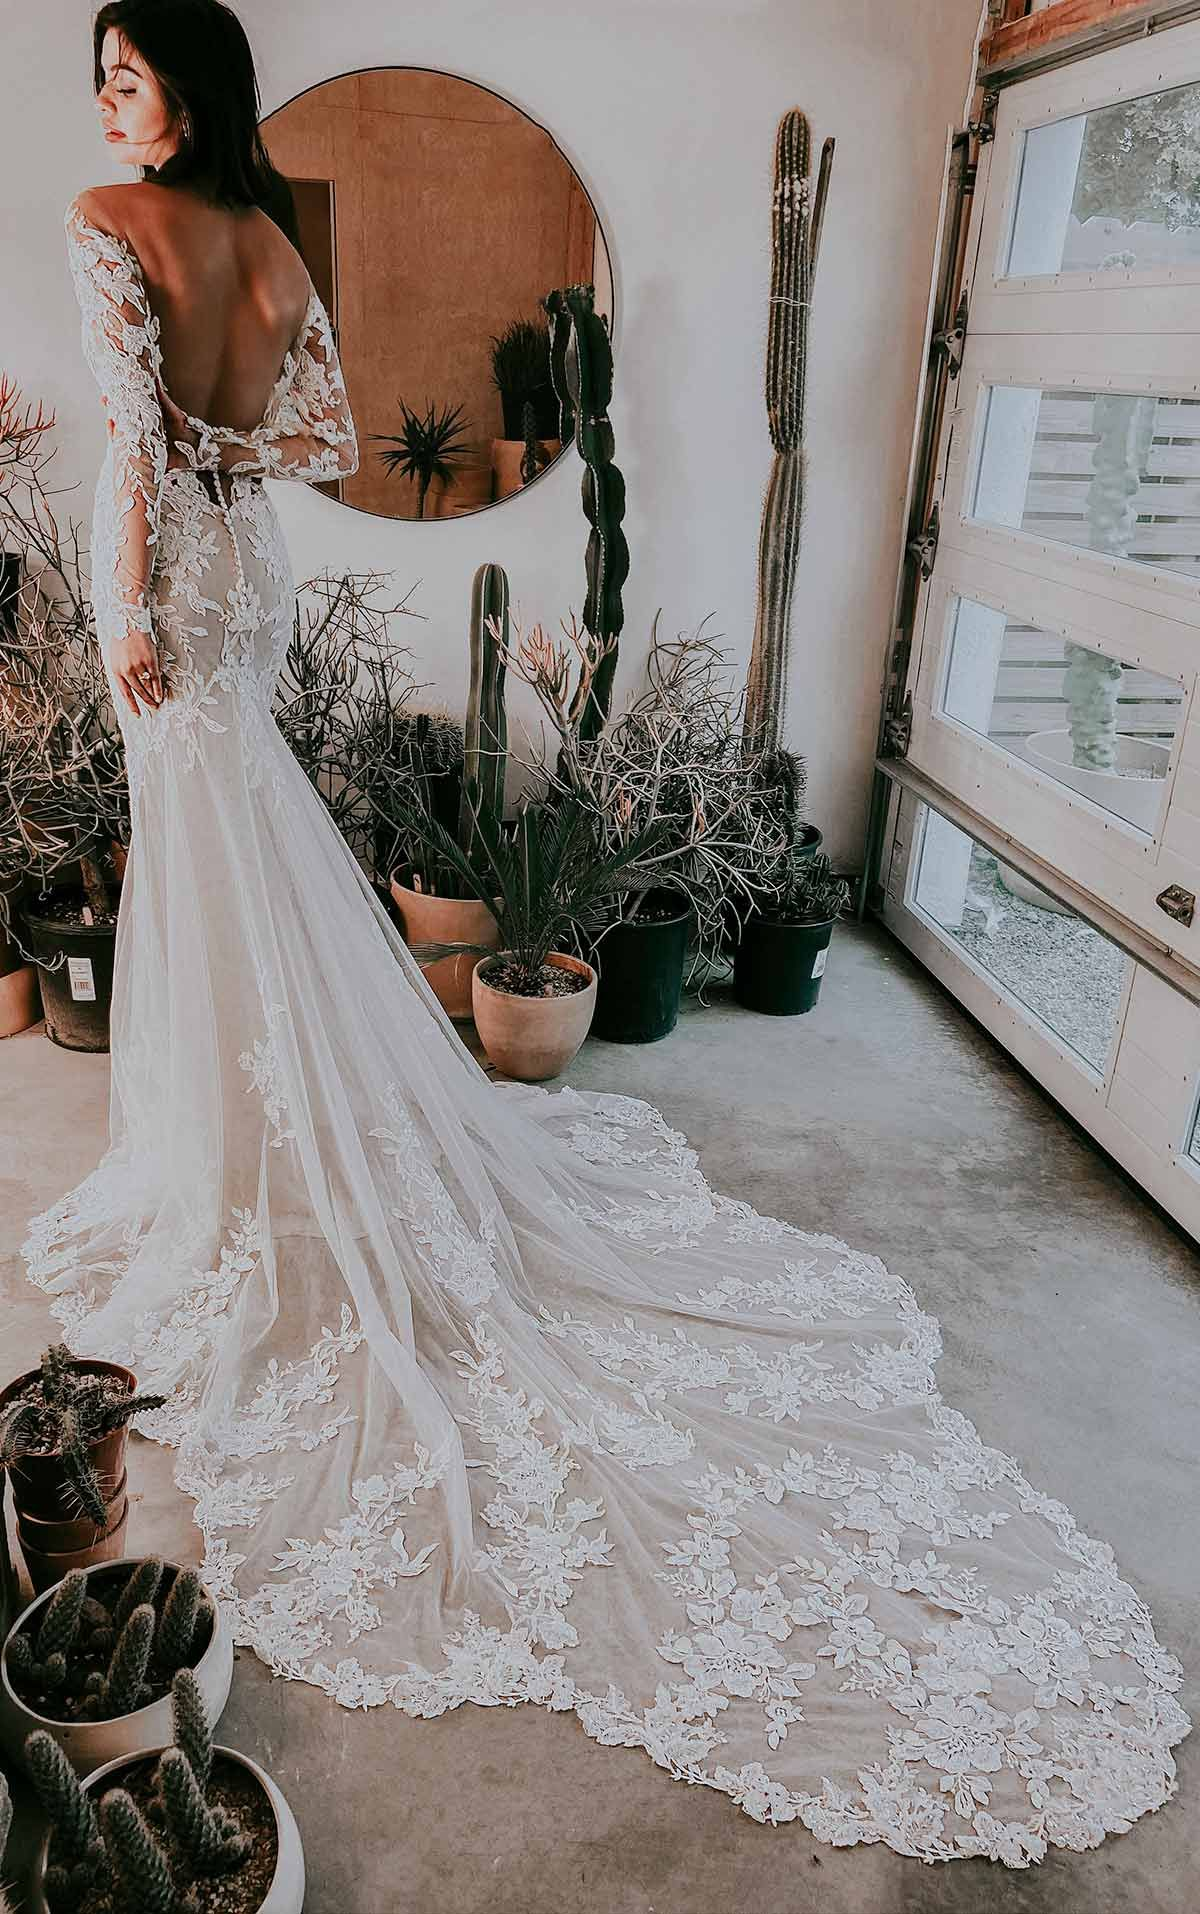 Sheer Floral Lace Wedding Dress With Long Sleeves Essense Of Australia Wedding Dresses Floral Lace Wedding Dress Long Sleeve Wedding Dress Lace Essense Of Australia Wedding Dresses [ 1914 x 1200 Pixel ]